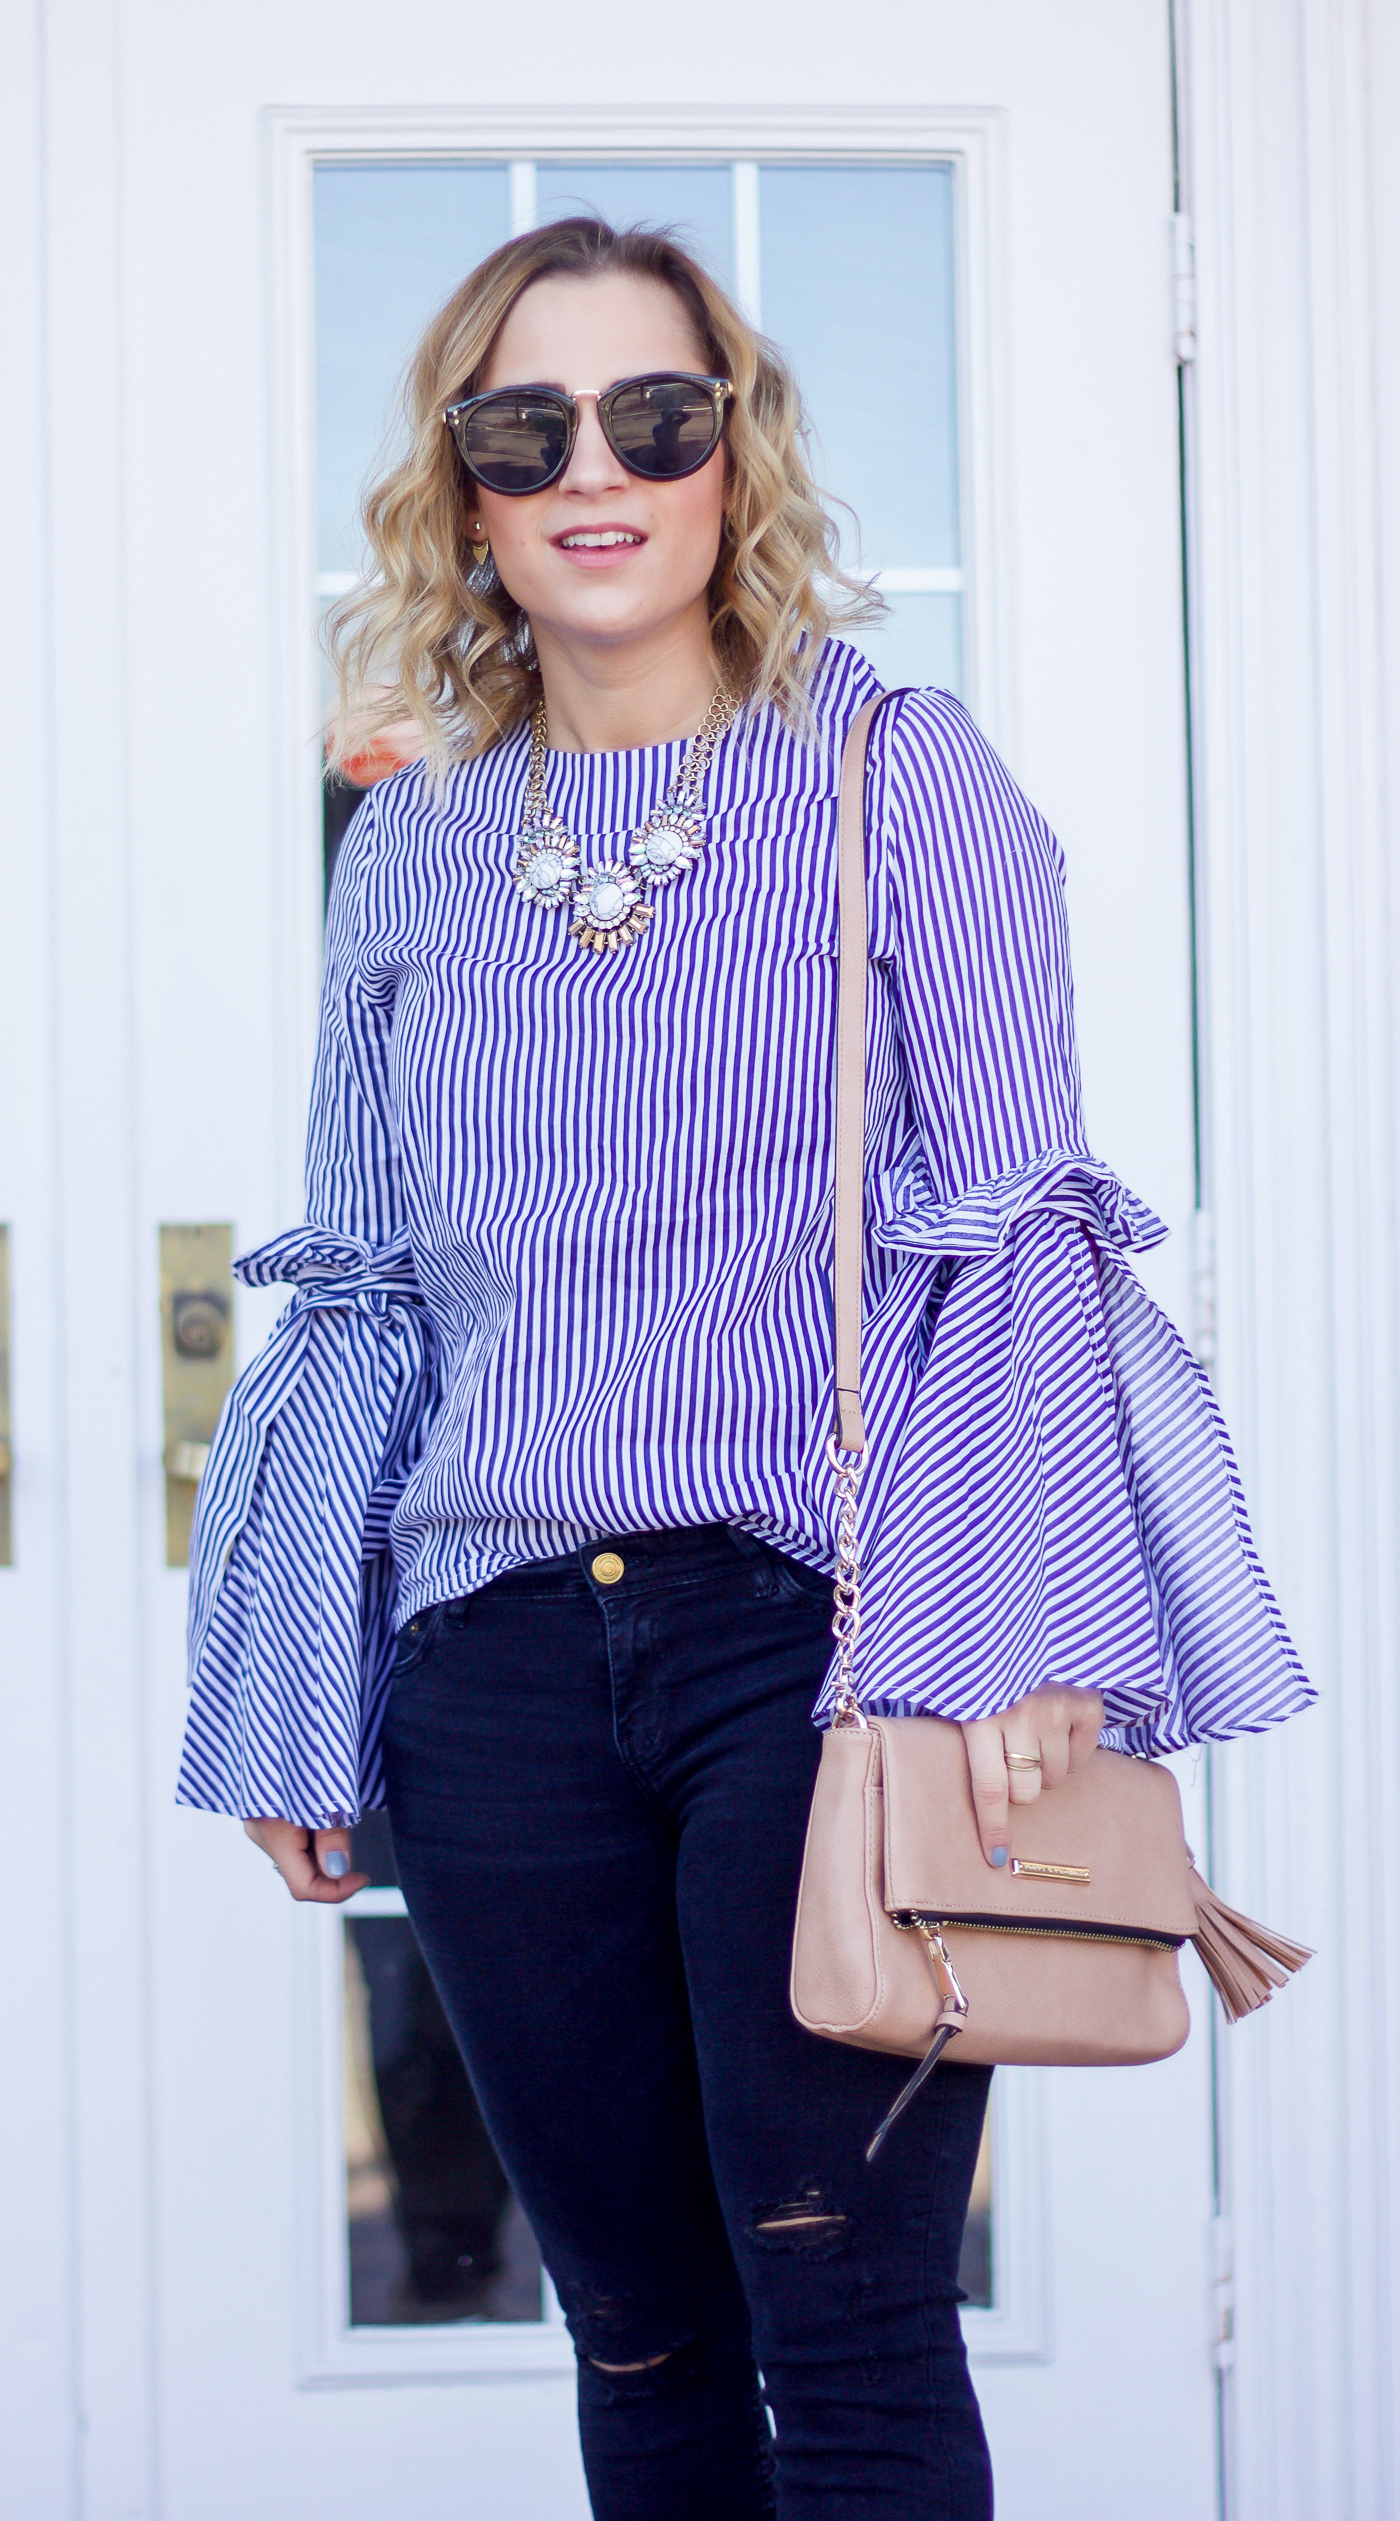 Canadian style blogger is wearing a striped top from Chicwish and a foldover bag from Poppy and Peonies